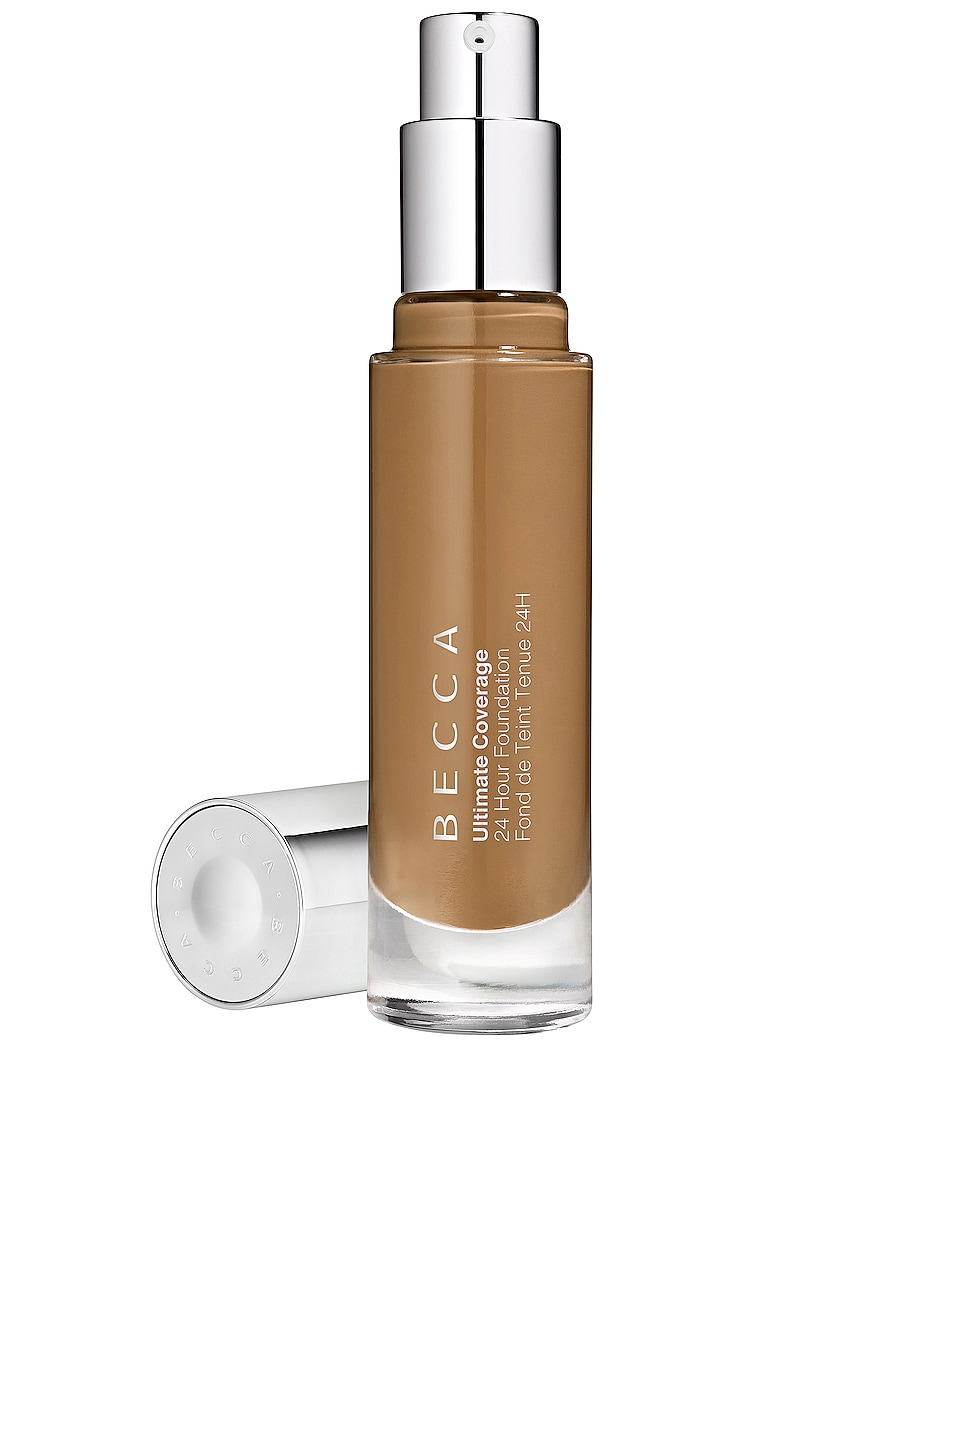 BECCA Ultimate Coverage 24 Hour Foundation in Cafe